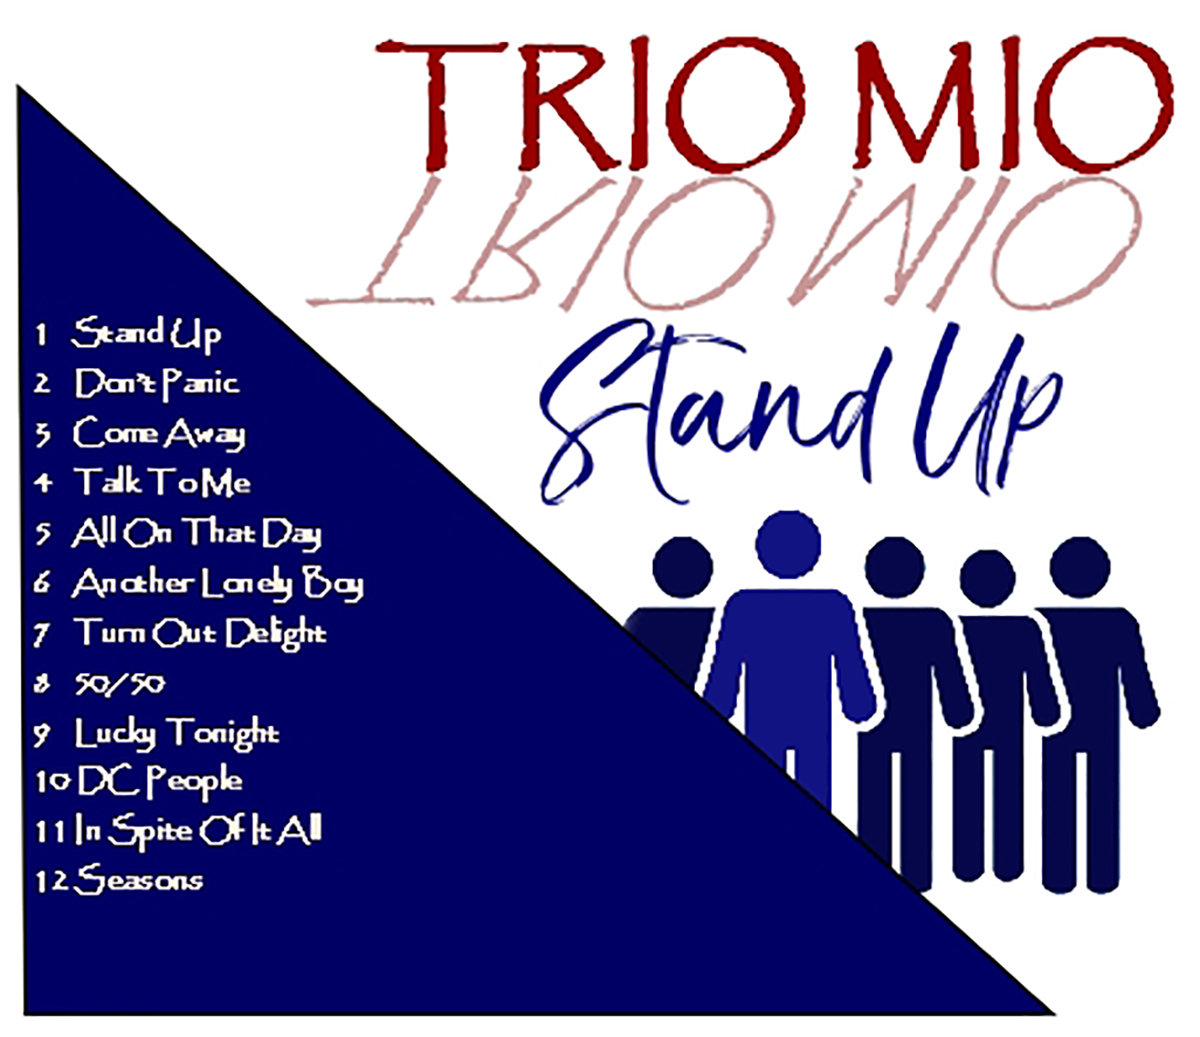 Rise Up/Stand Up   TrioMio